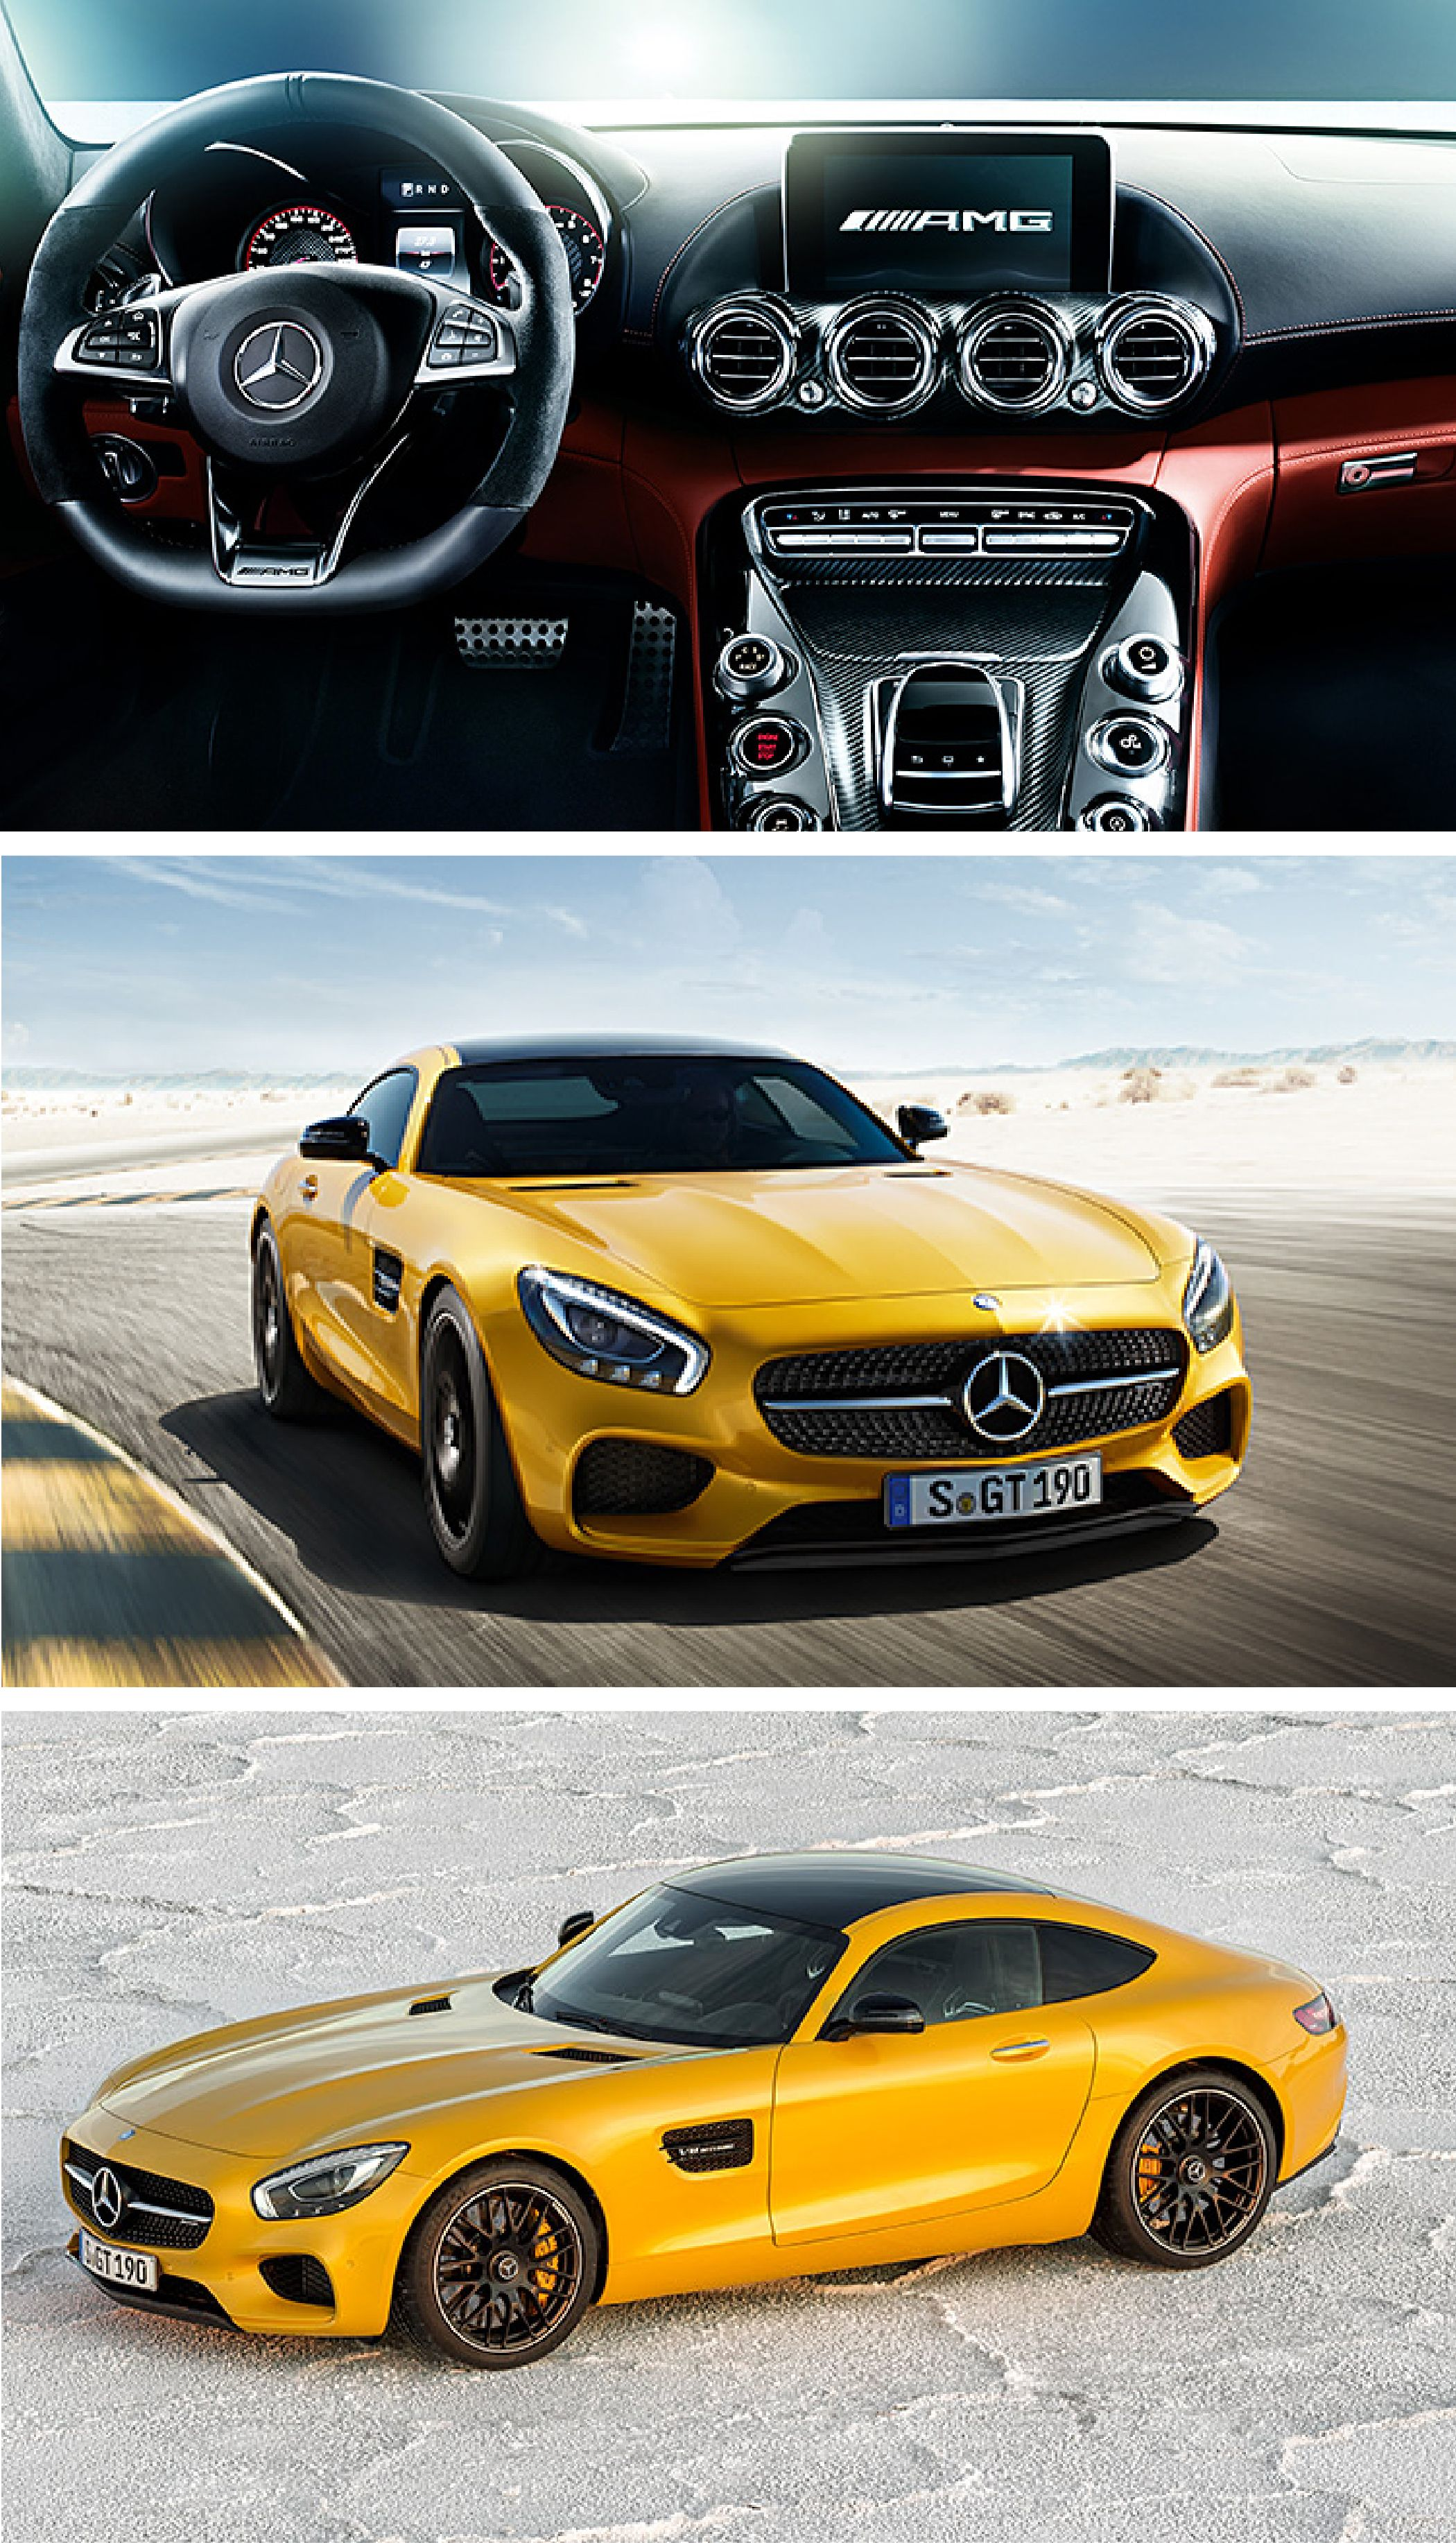 The new Mercedes-AMG is handcrafted by racers and has driving performance for car enthusiasts. It has everything you would expect from a sports car—from the characteristic styling and thoroughbred motorsport technology to the optimum weight distribution.